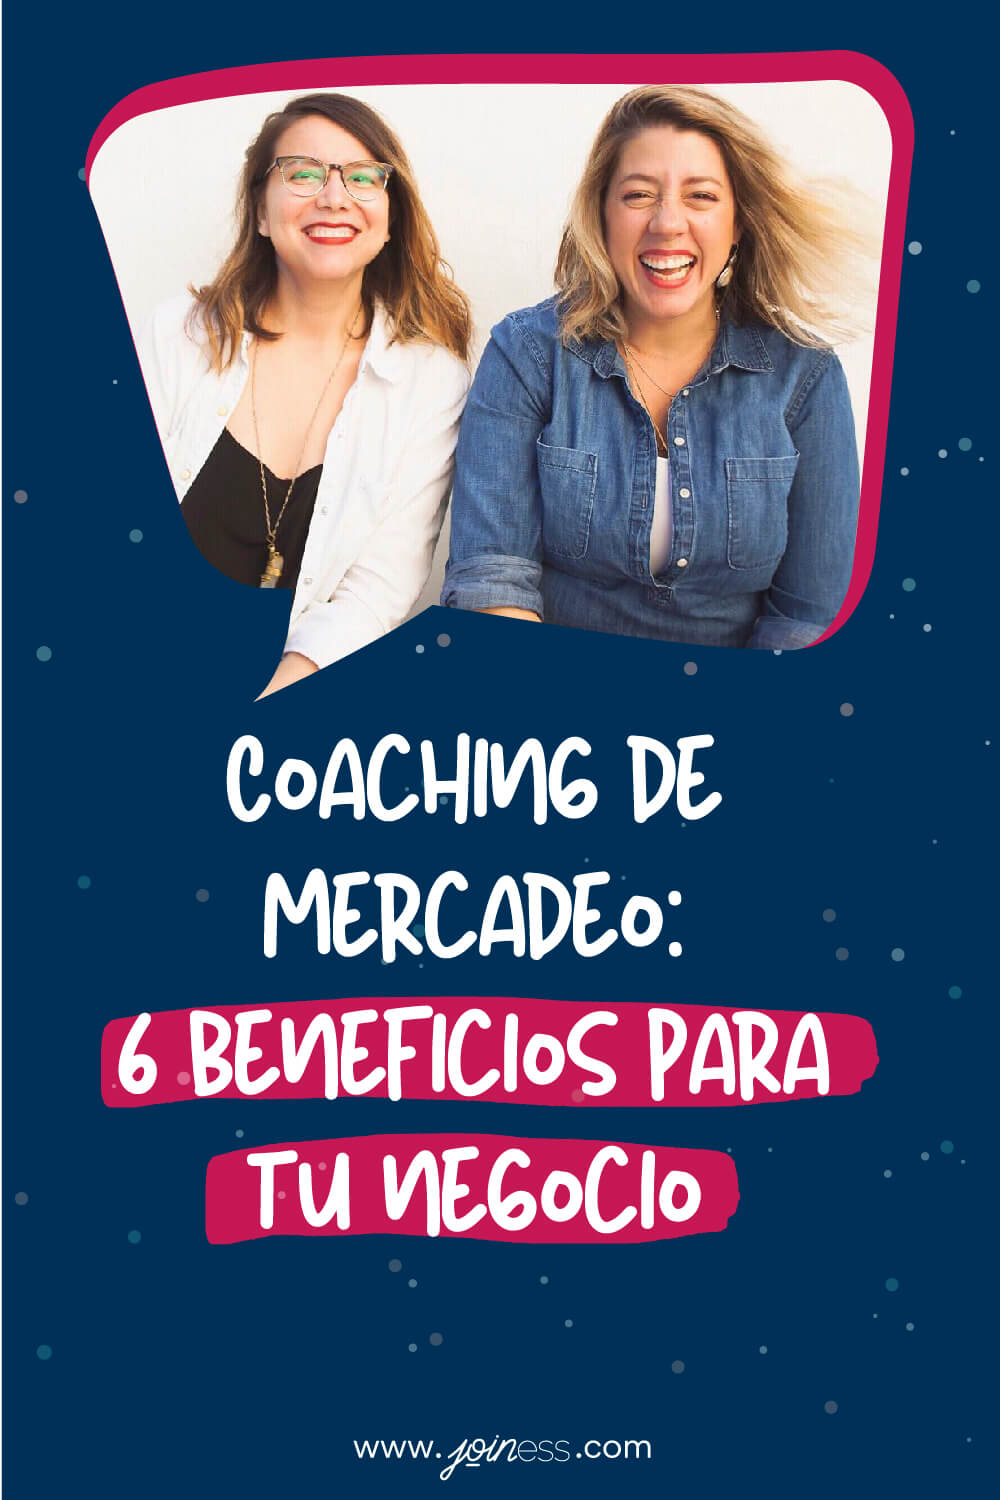 Coaching de Mercadeo